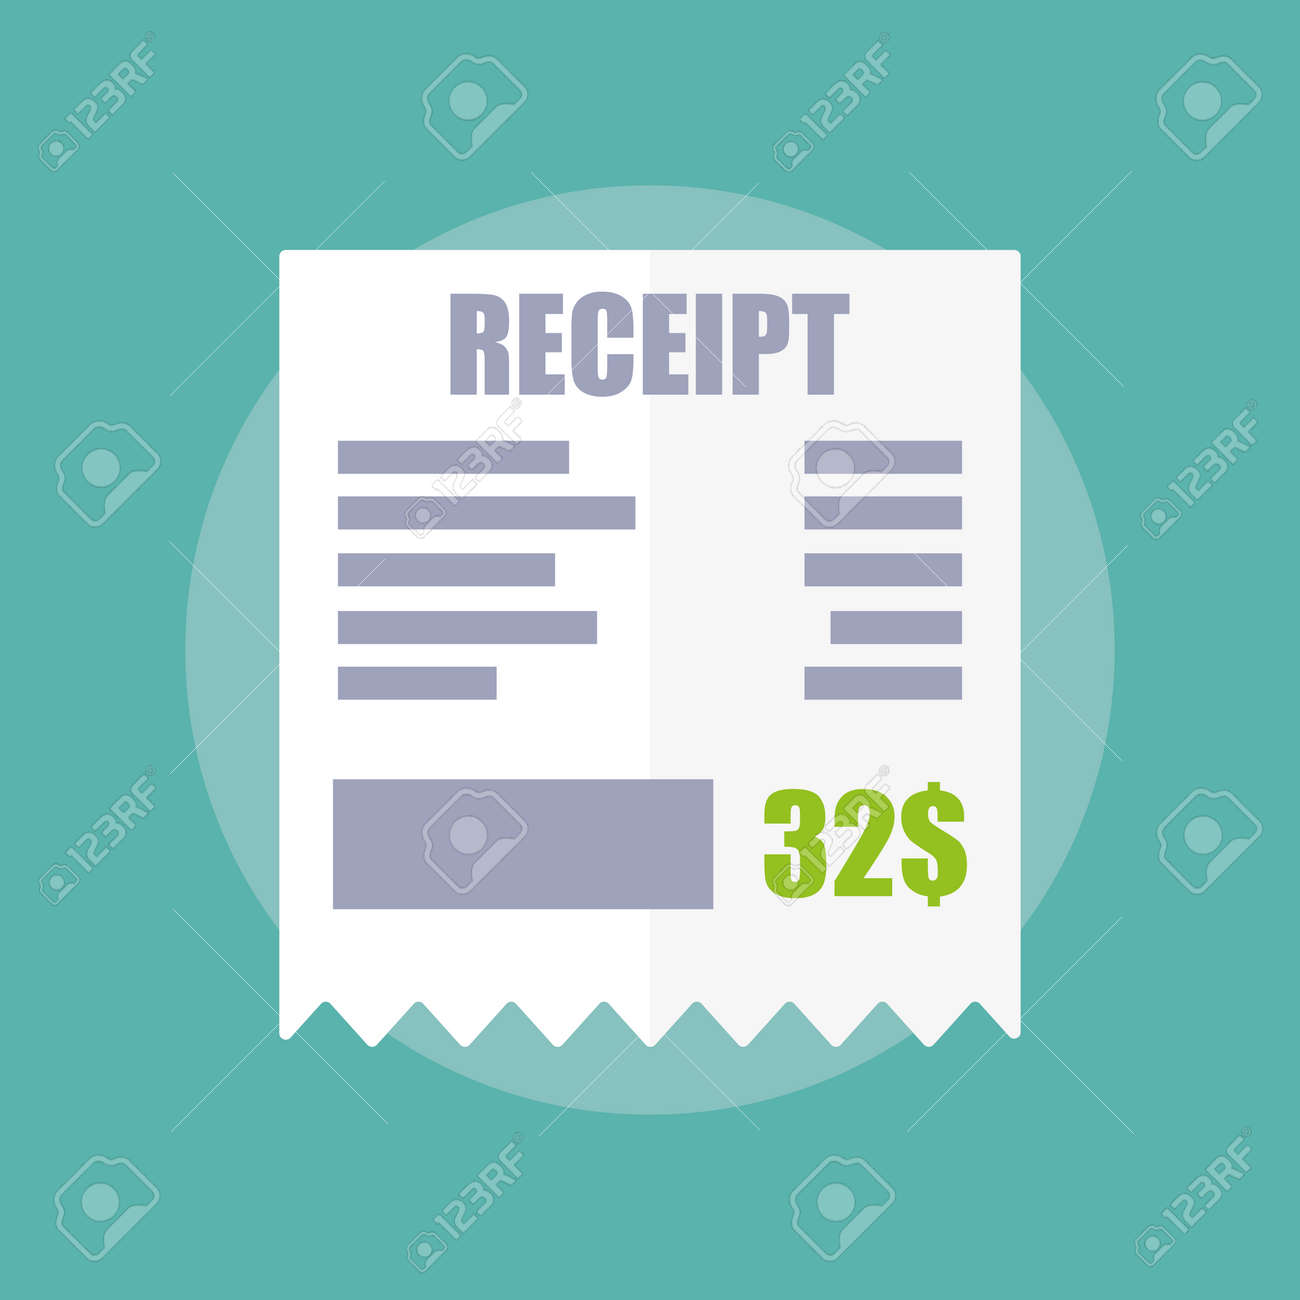 Receipt Icon Flat Design Royalty Free Cliparts Vectors And – Receipt Design